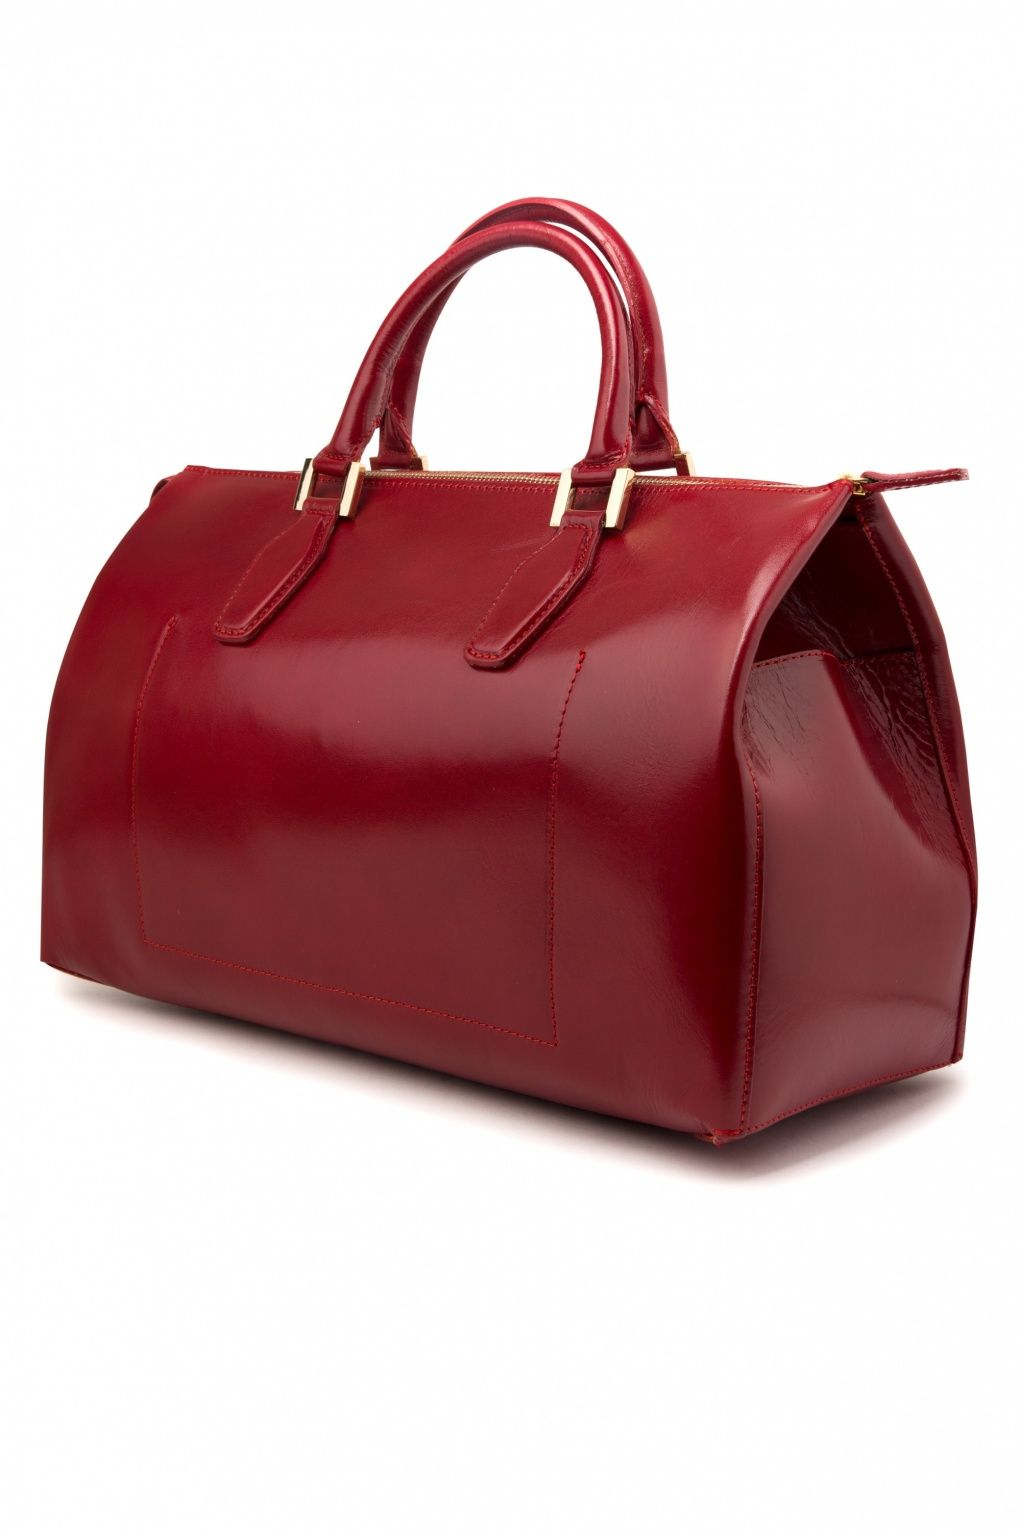 4602dd0e96b0 VaVa Vintage - 60s Vintage Style Doctors Bag Travel Ladies Bag Burgundy Red  genuine leather